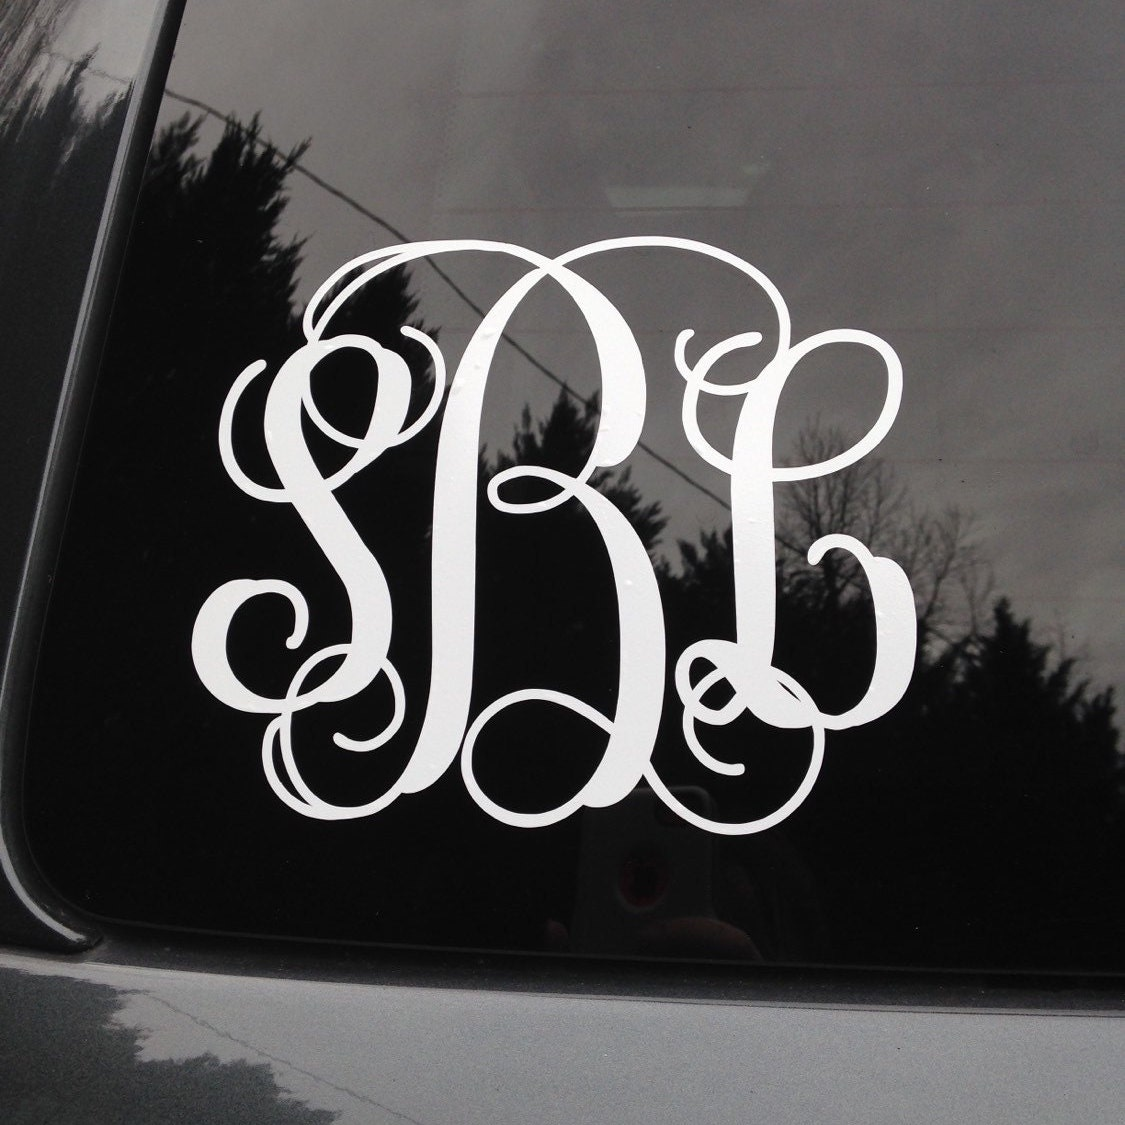 Car sticker maker philippines - Monogram Car Decal Monogram Car Sticker Vine Monogram Car Decal Script Monogram Car Decal Car Decal Car Sticker